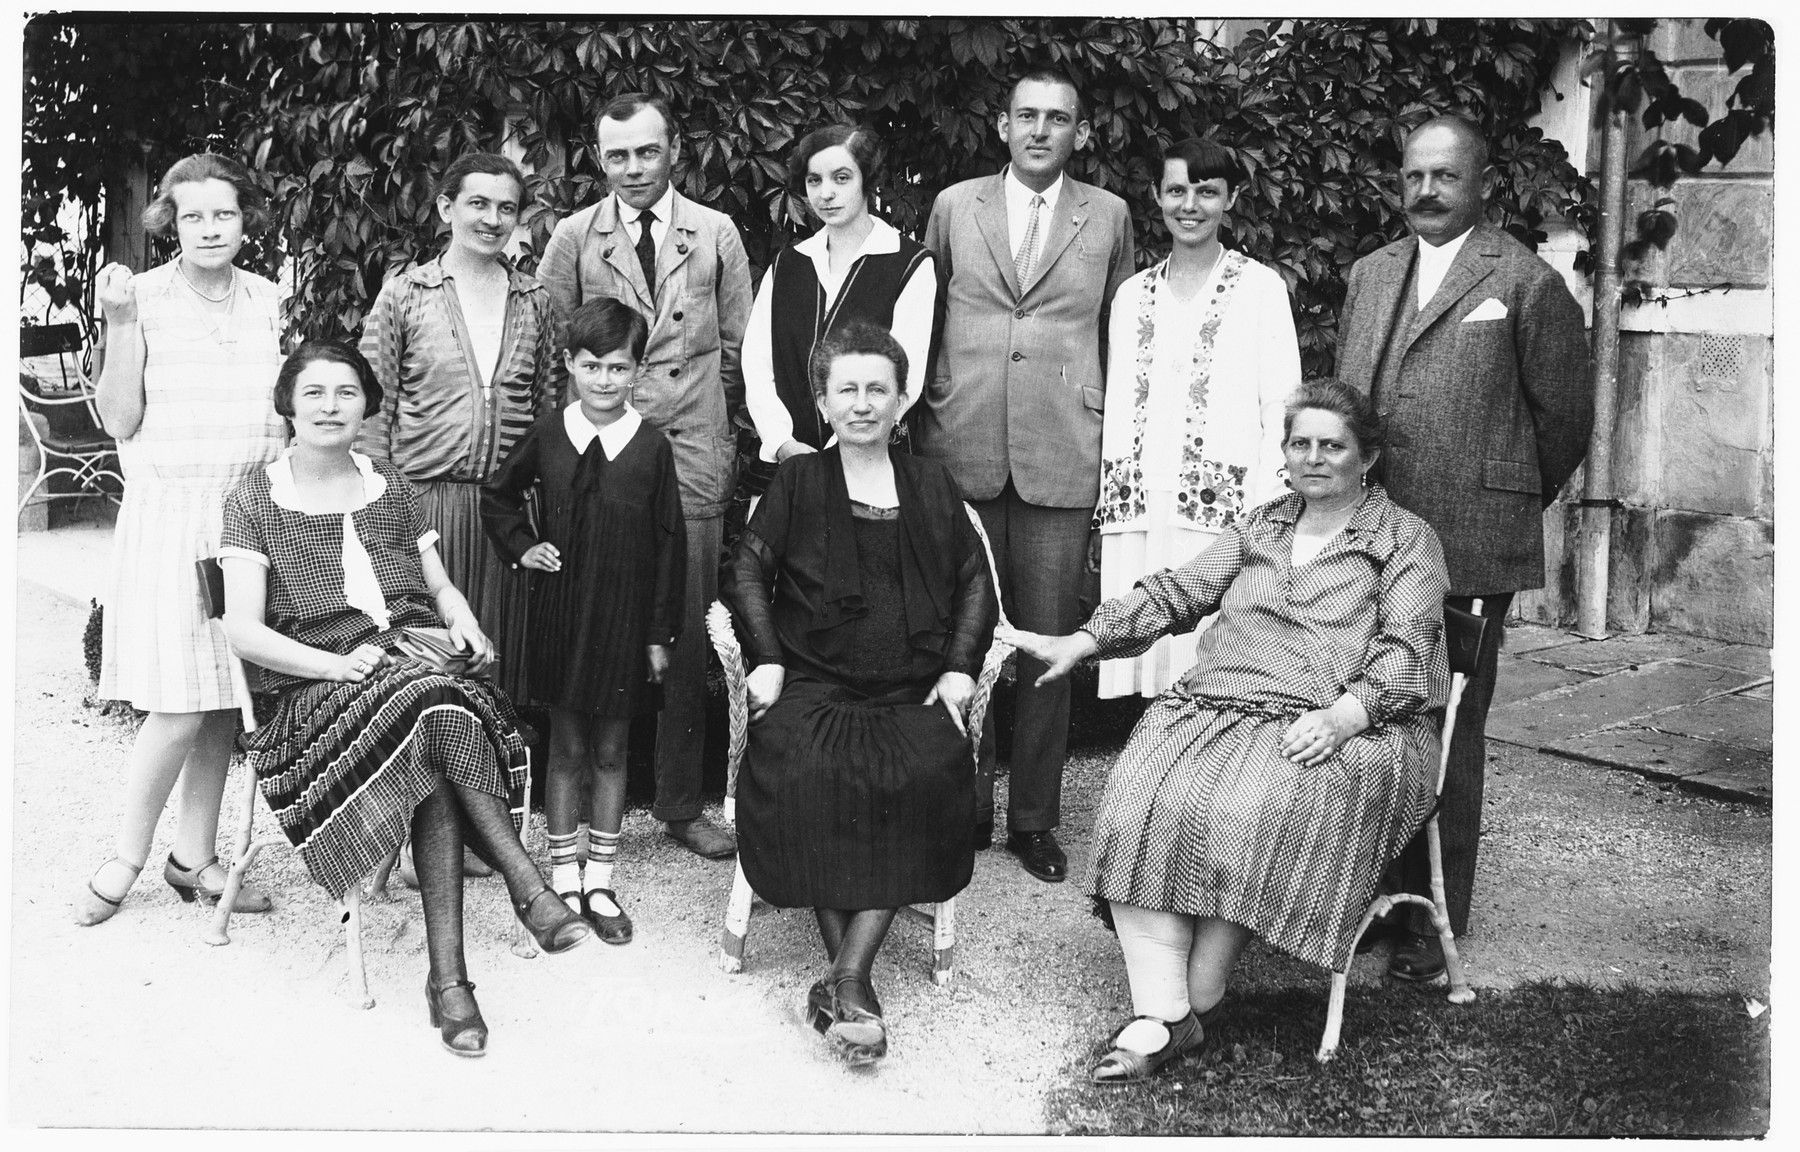 Group portrait of Jewish and non-Jewish friends at a social gathering in Ludbreg, Croatia.  Among those pictured are Silva Deutsch (top row on the far left), Giza Deutsch (top row, second from the left) and Ljudevit (Ludva) Vrancic, Giza's future husband (top row, third from the left).